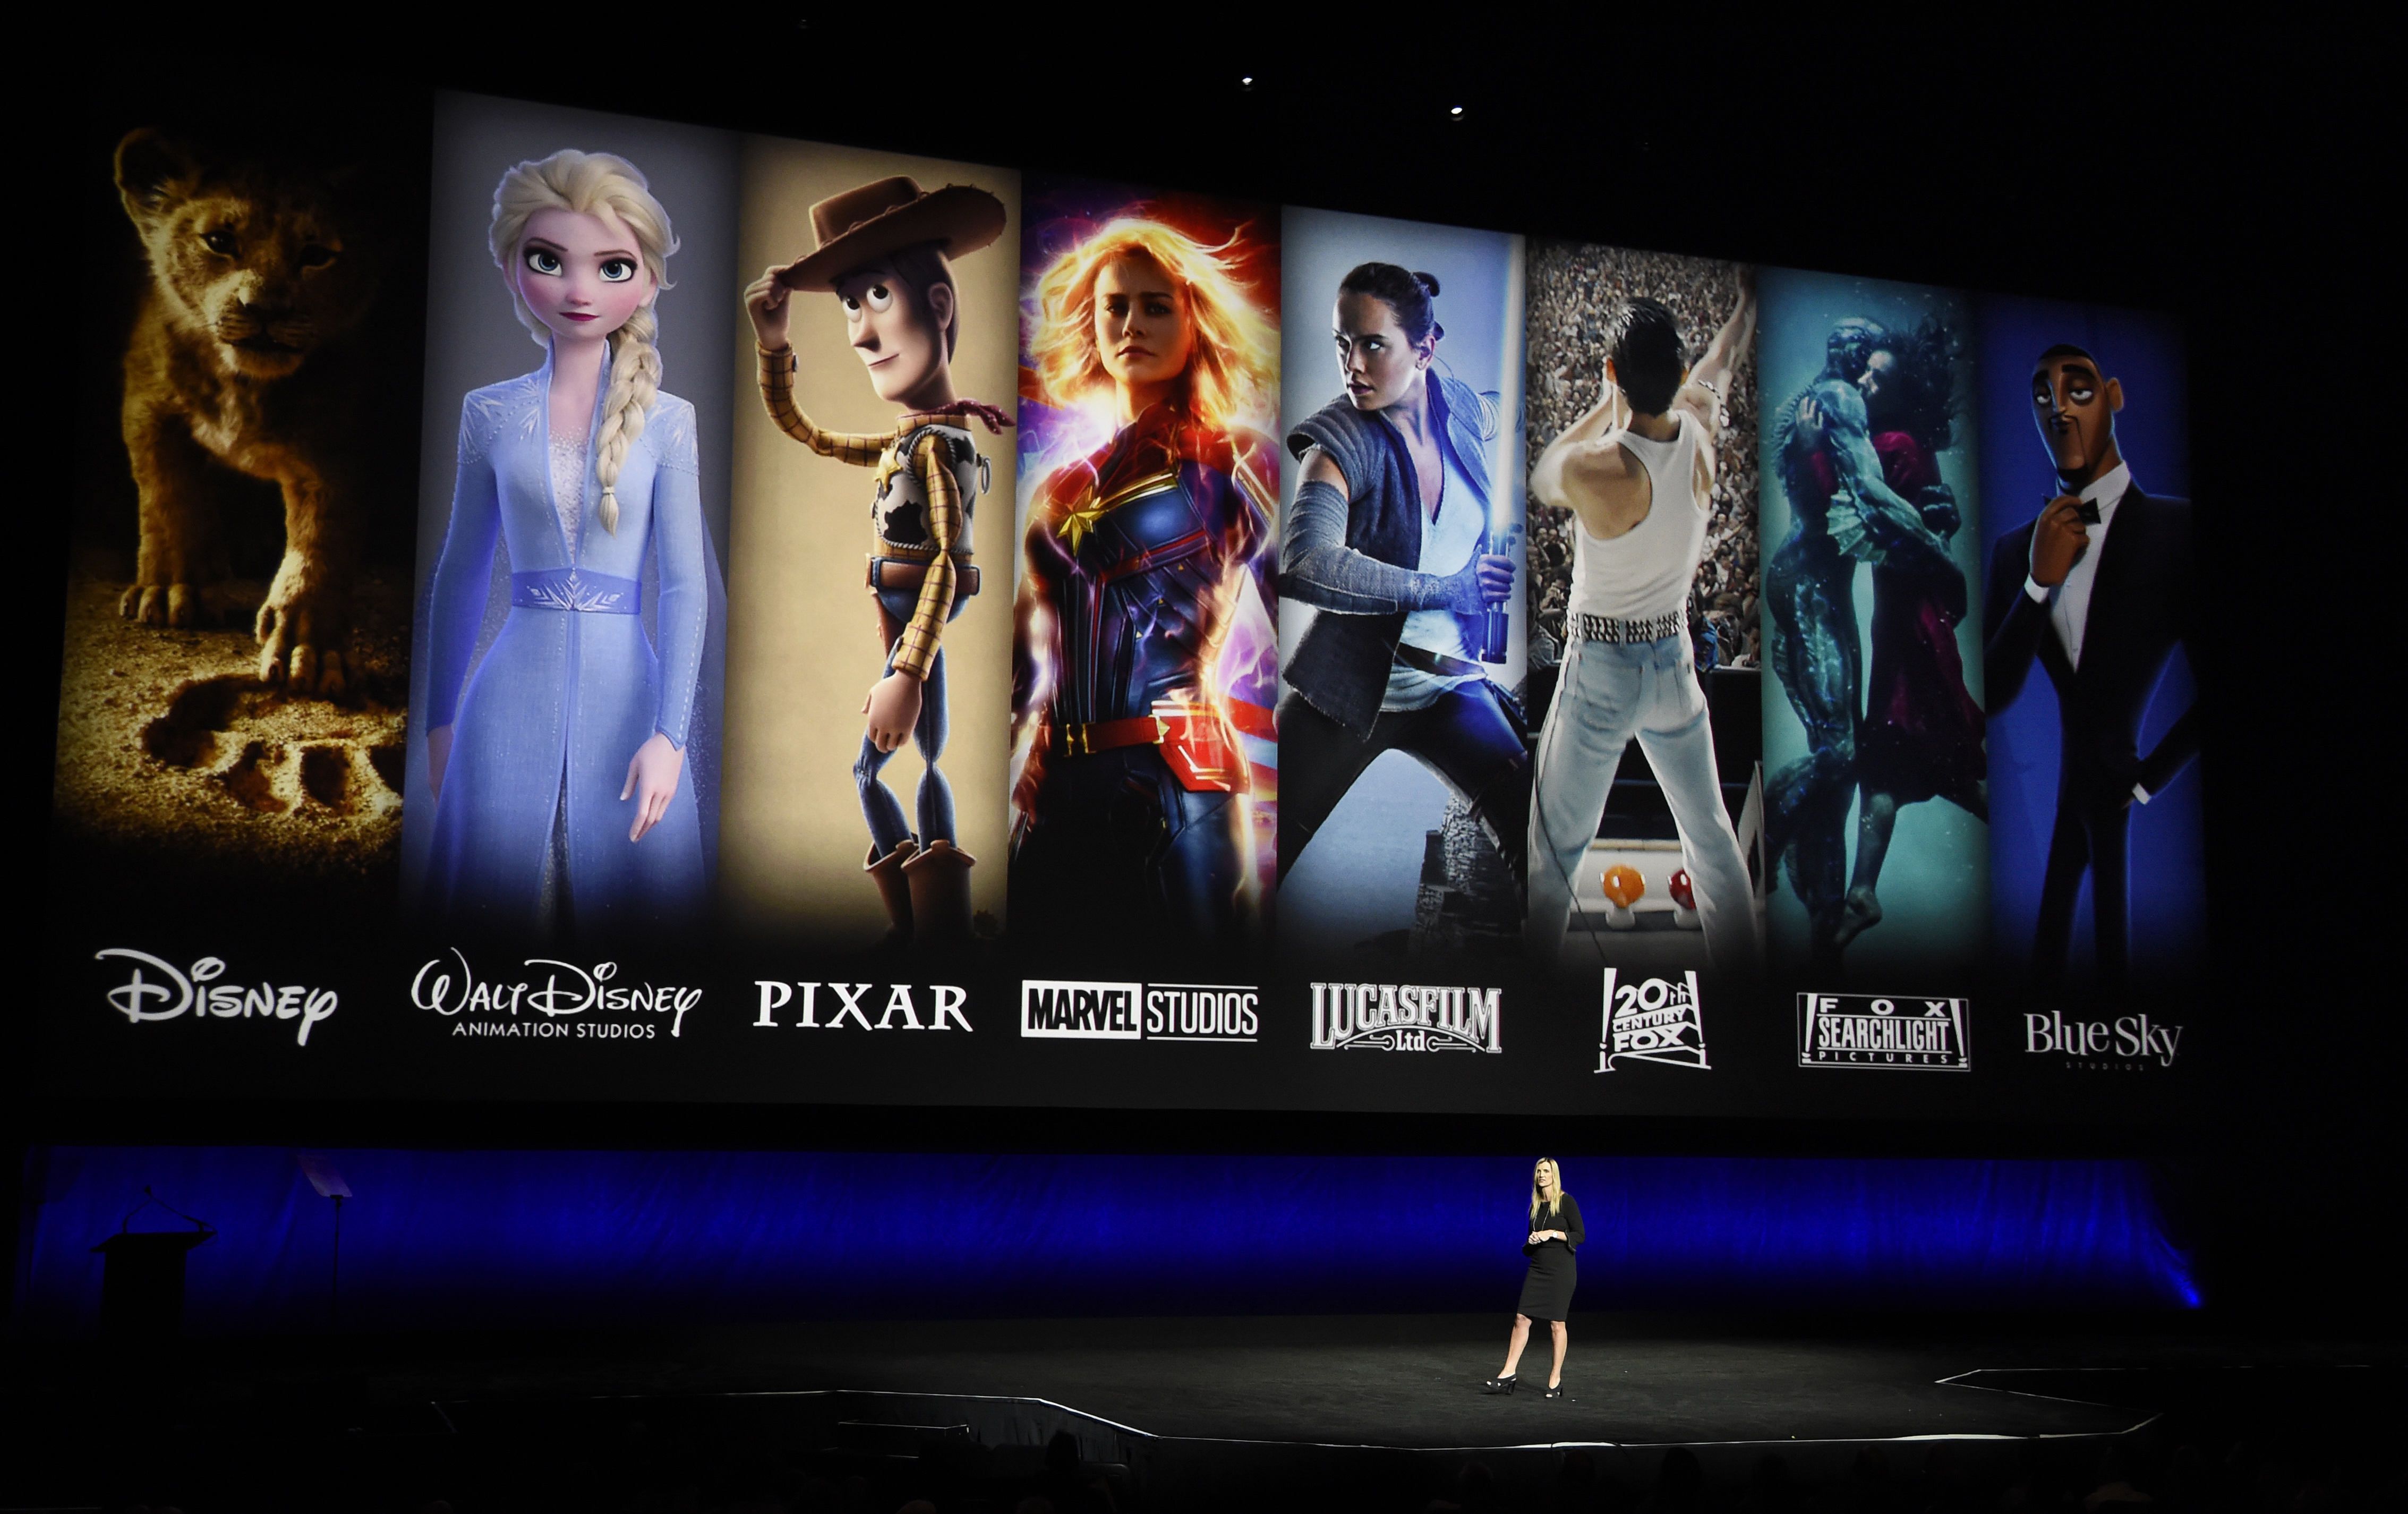 FILE - In this April 3, 2019, file photo characters from Disney and Fox movies are displayed.